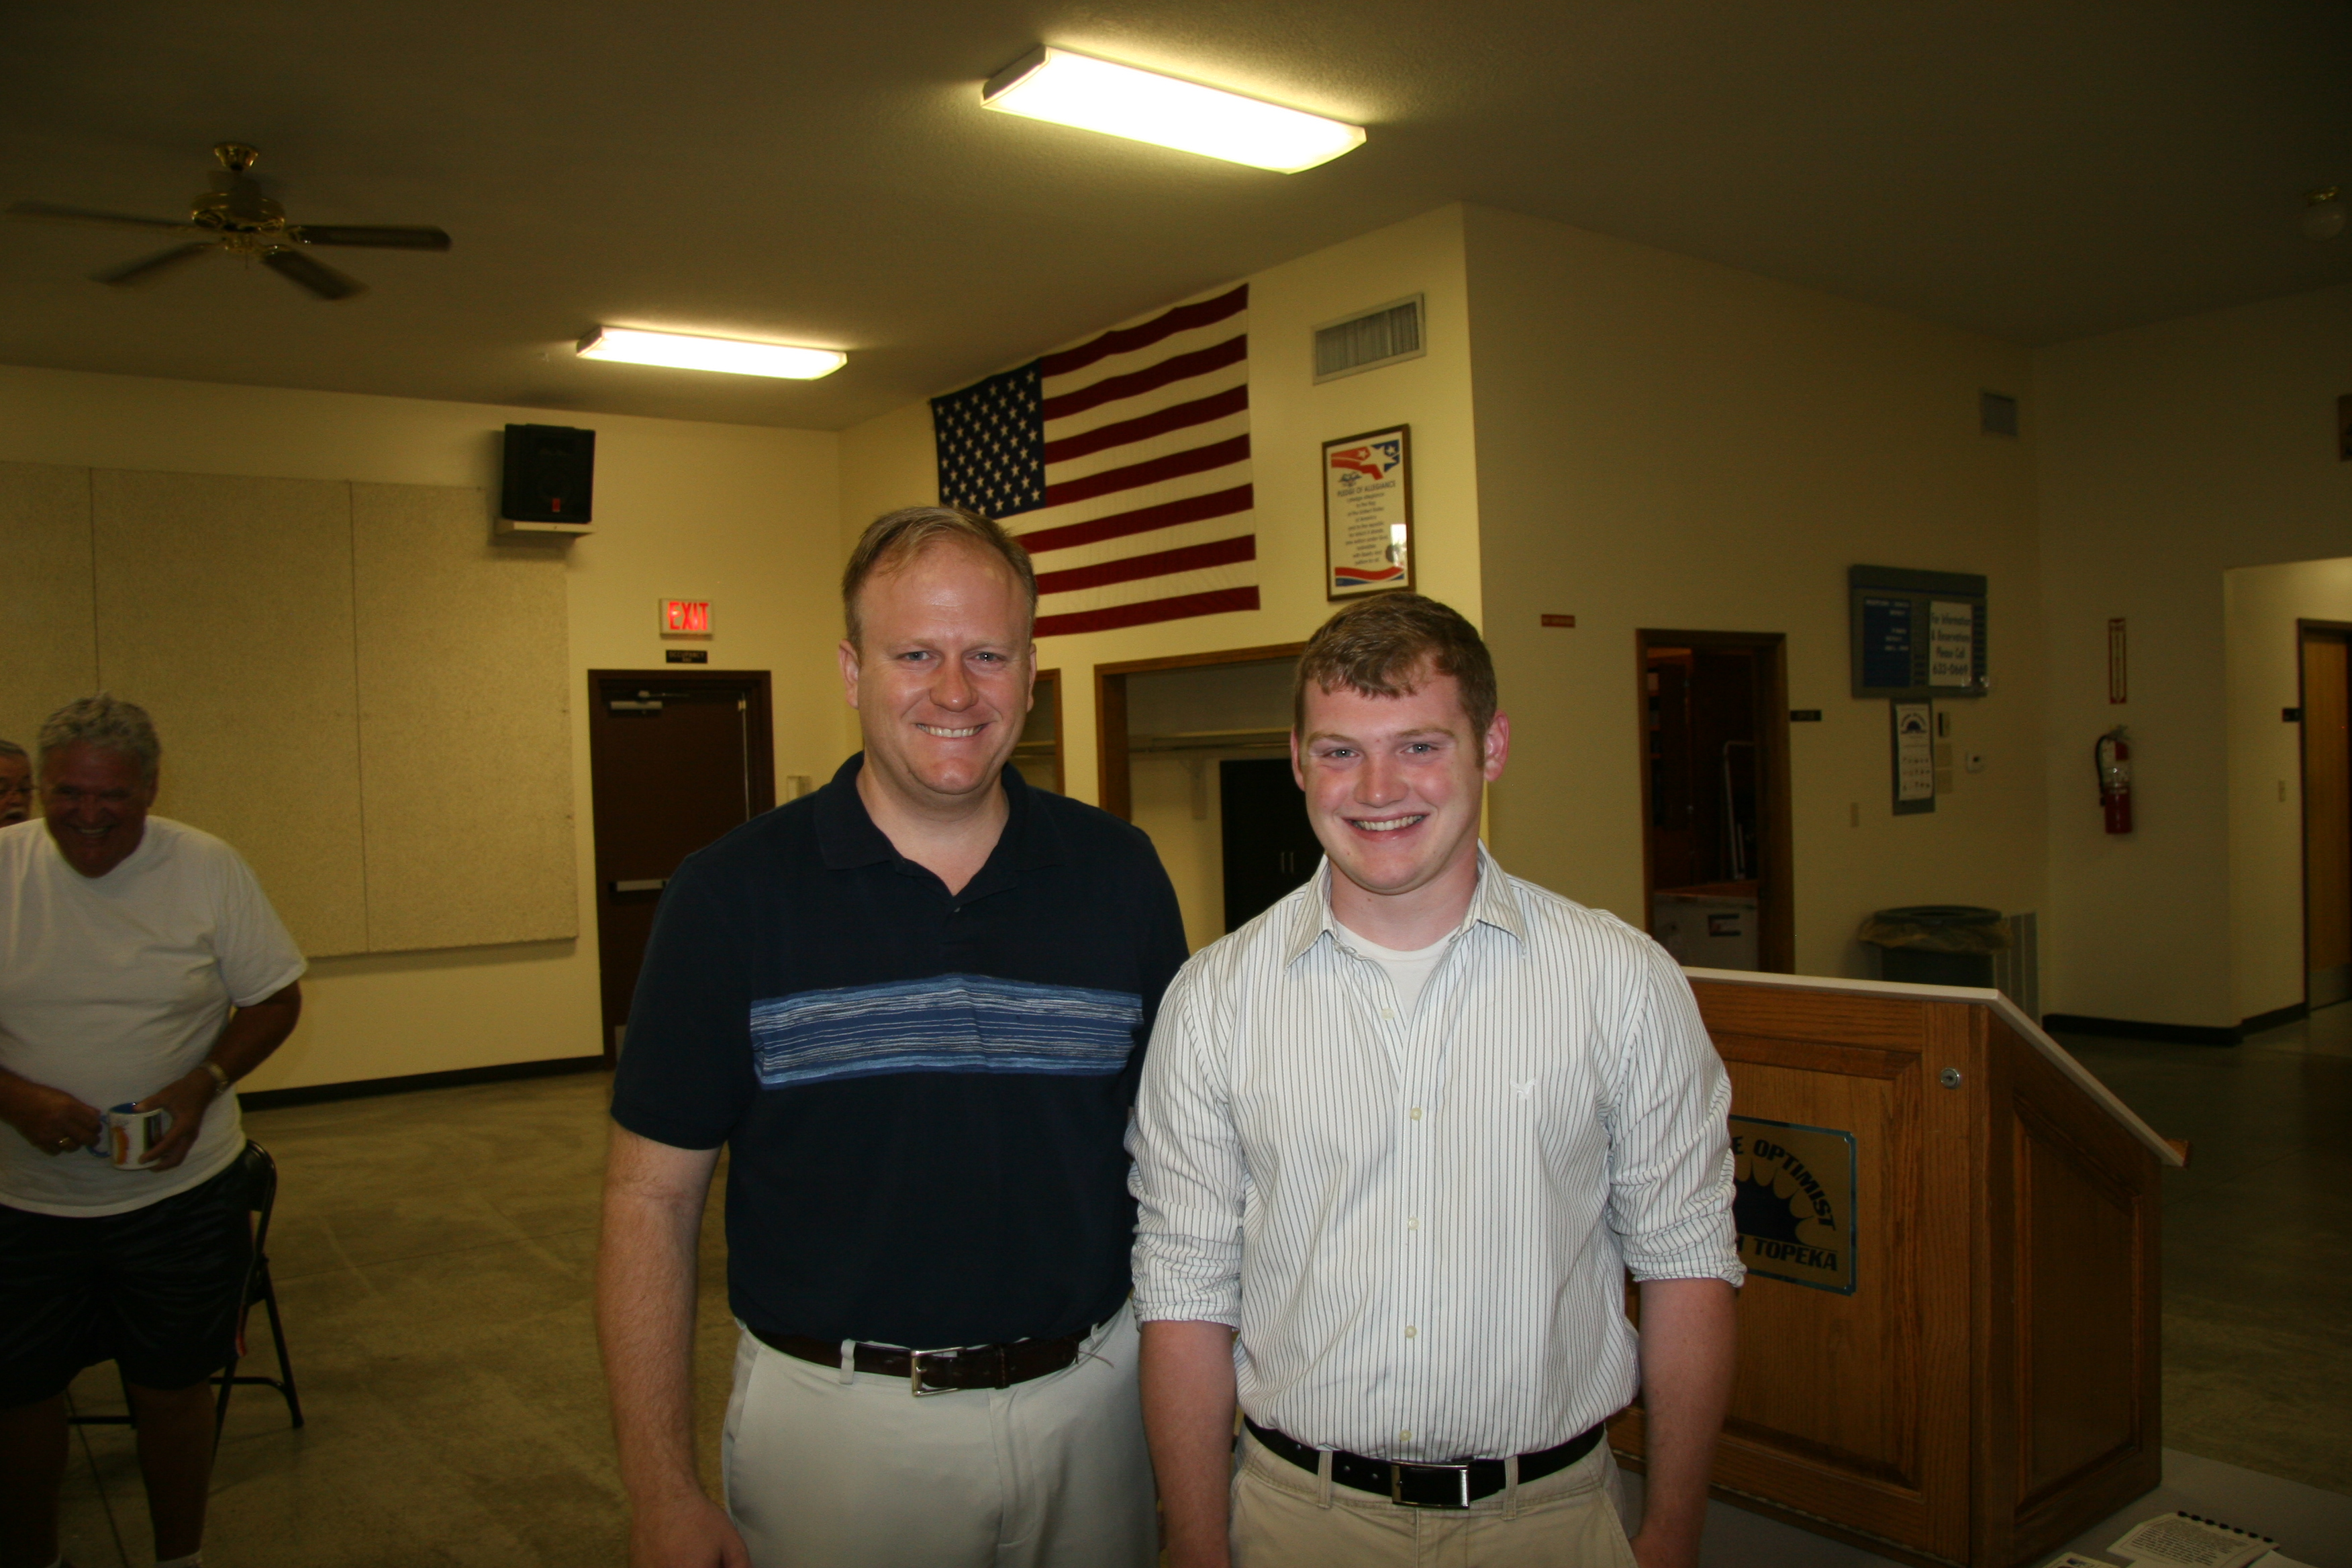 Rep. Mike Burgess Congratulates the 23rd delegate he sponsored to Boys and Girls State